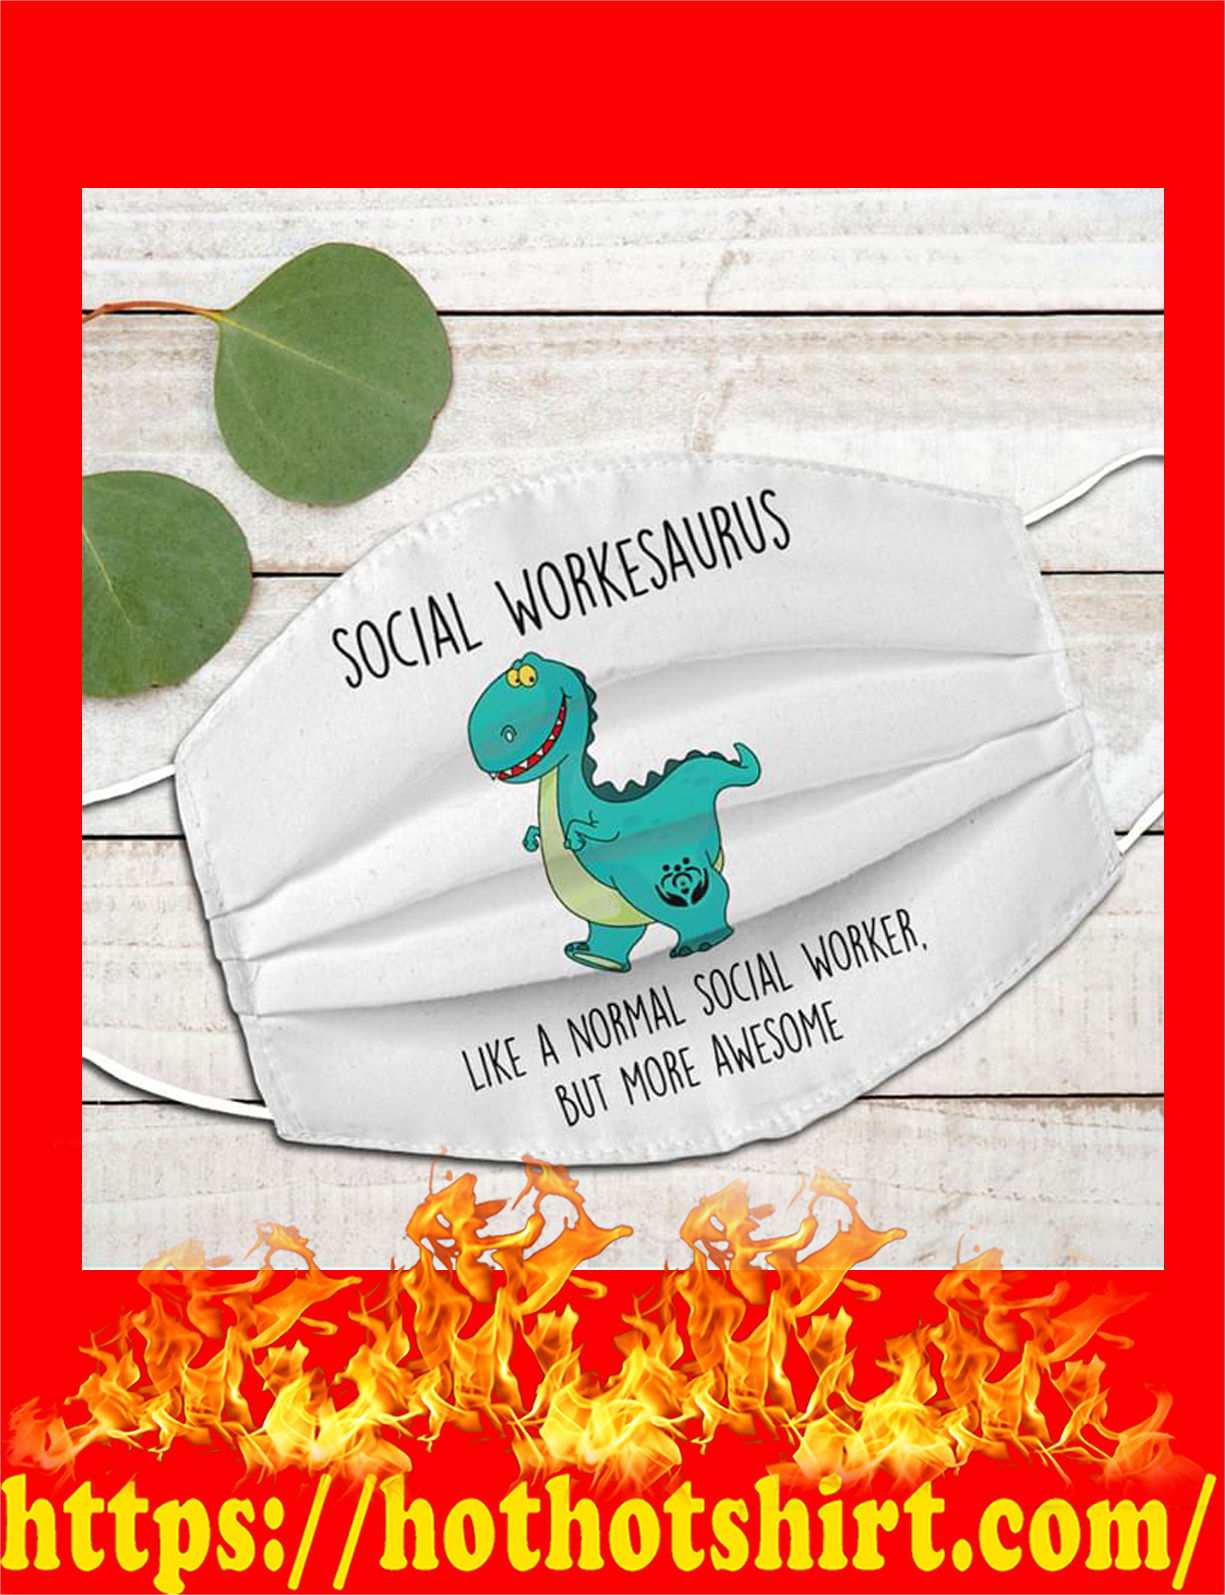 Social workersaurus like a normal social worker but more awesome face mask - detail